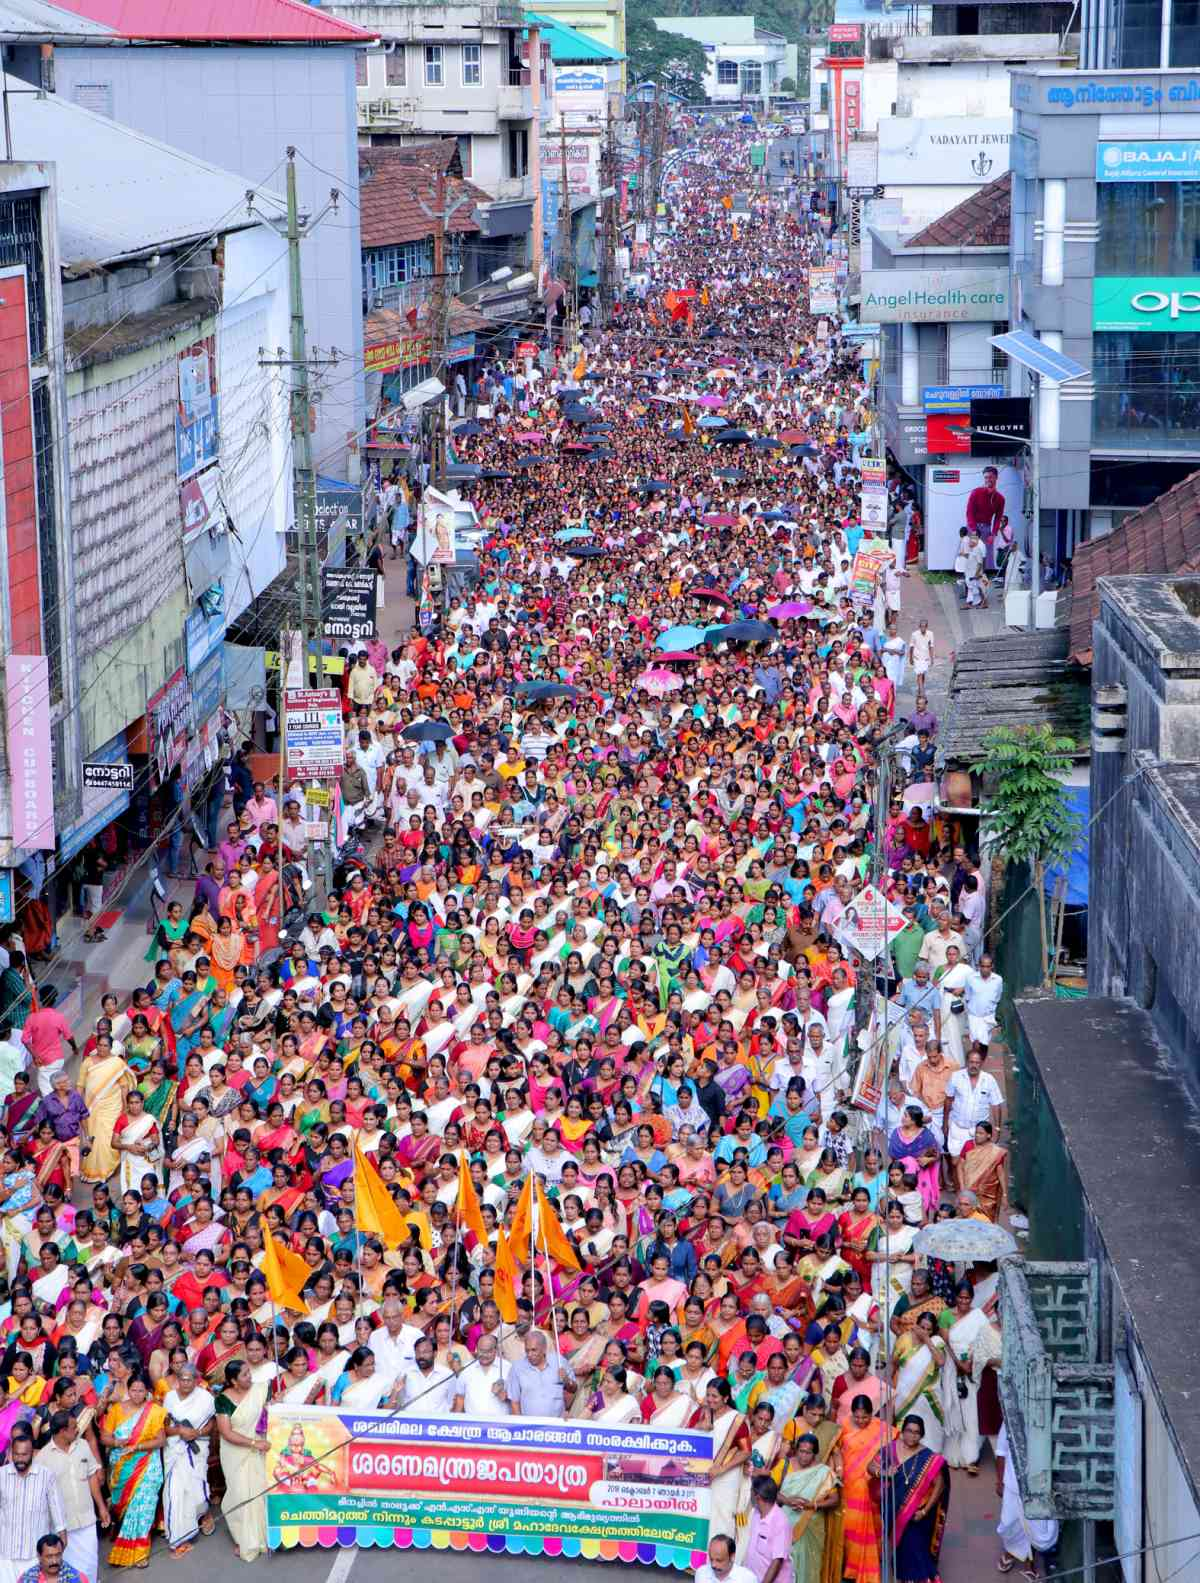 A protest march against the SC's Sabarimala verdict organised by the Nair Service Society in Pala in Kottayam district on October 7. (Photo credit: Vineeth).